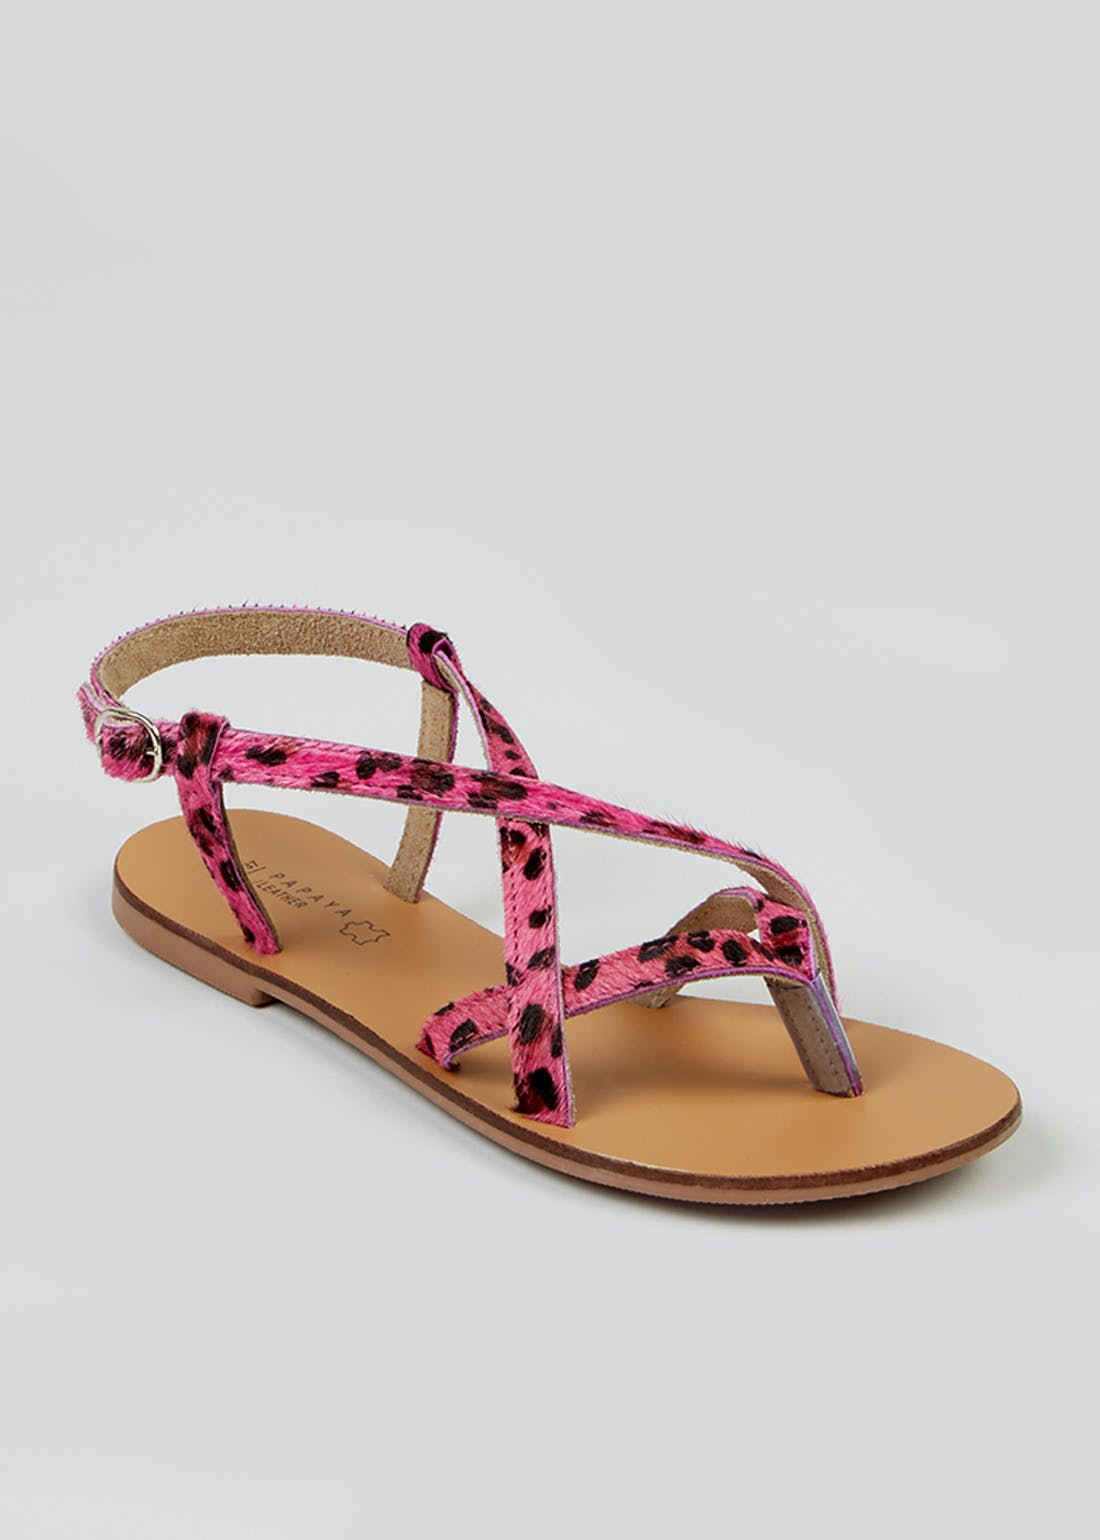 Pink Leopard Print Leather Sandals